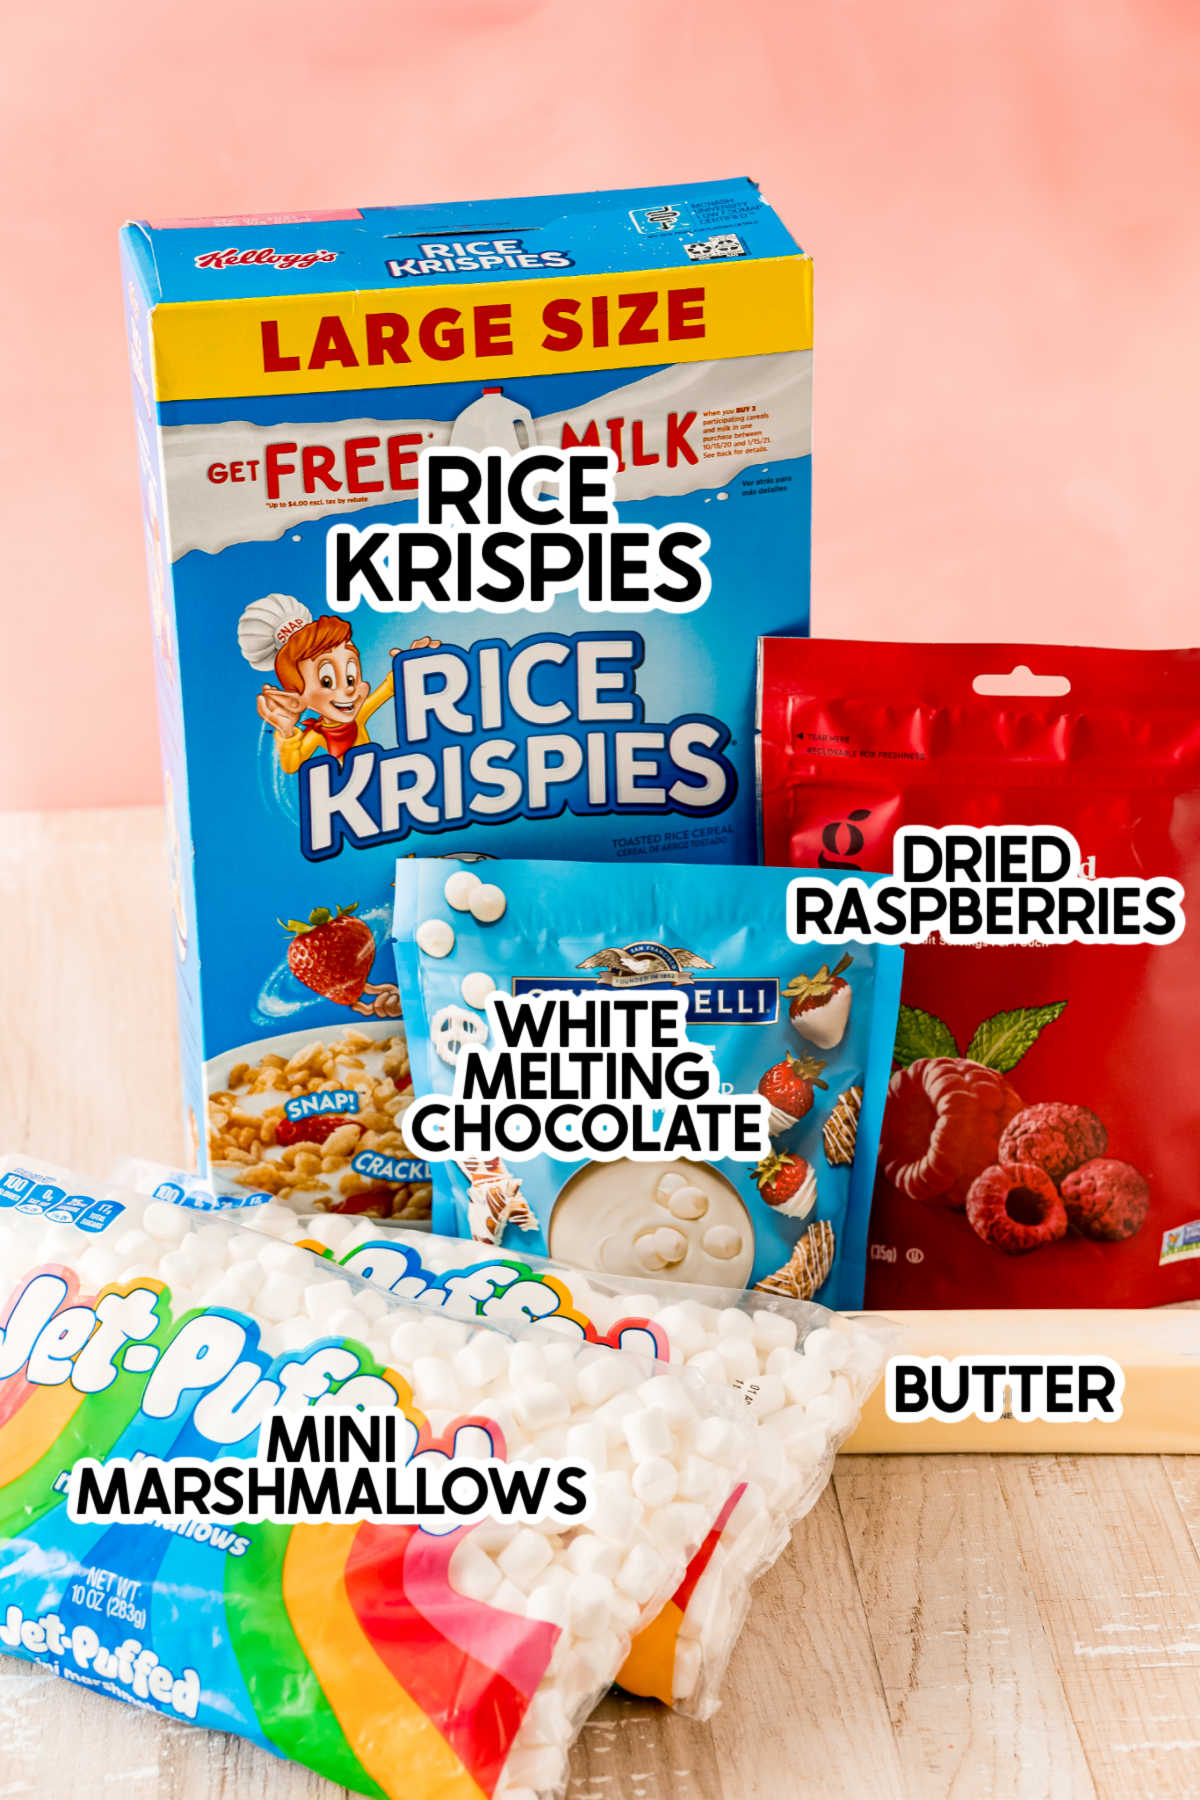 Ingredients for chocolate dipped rice krispie treats with labels